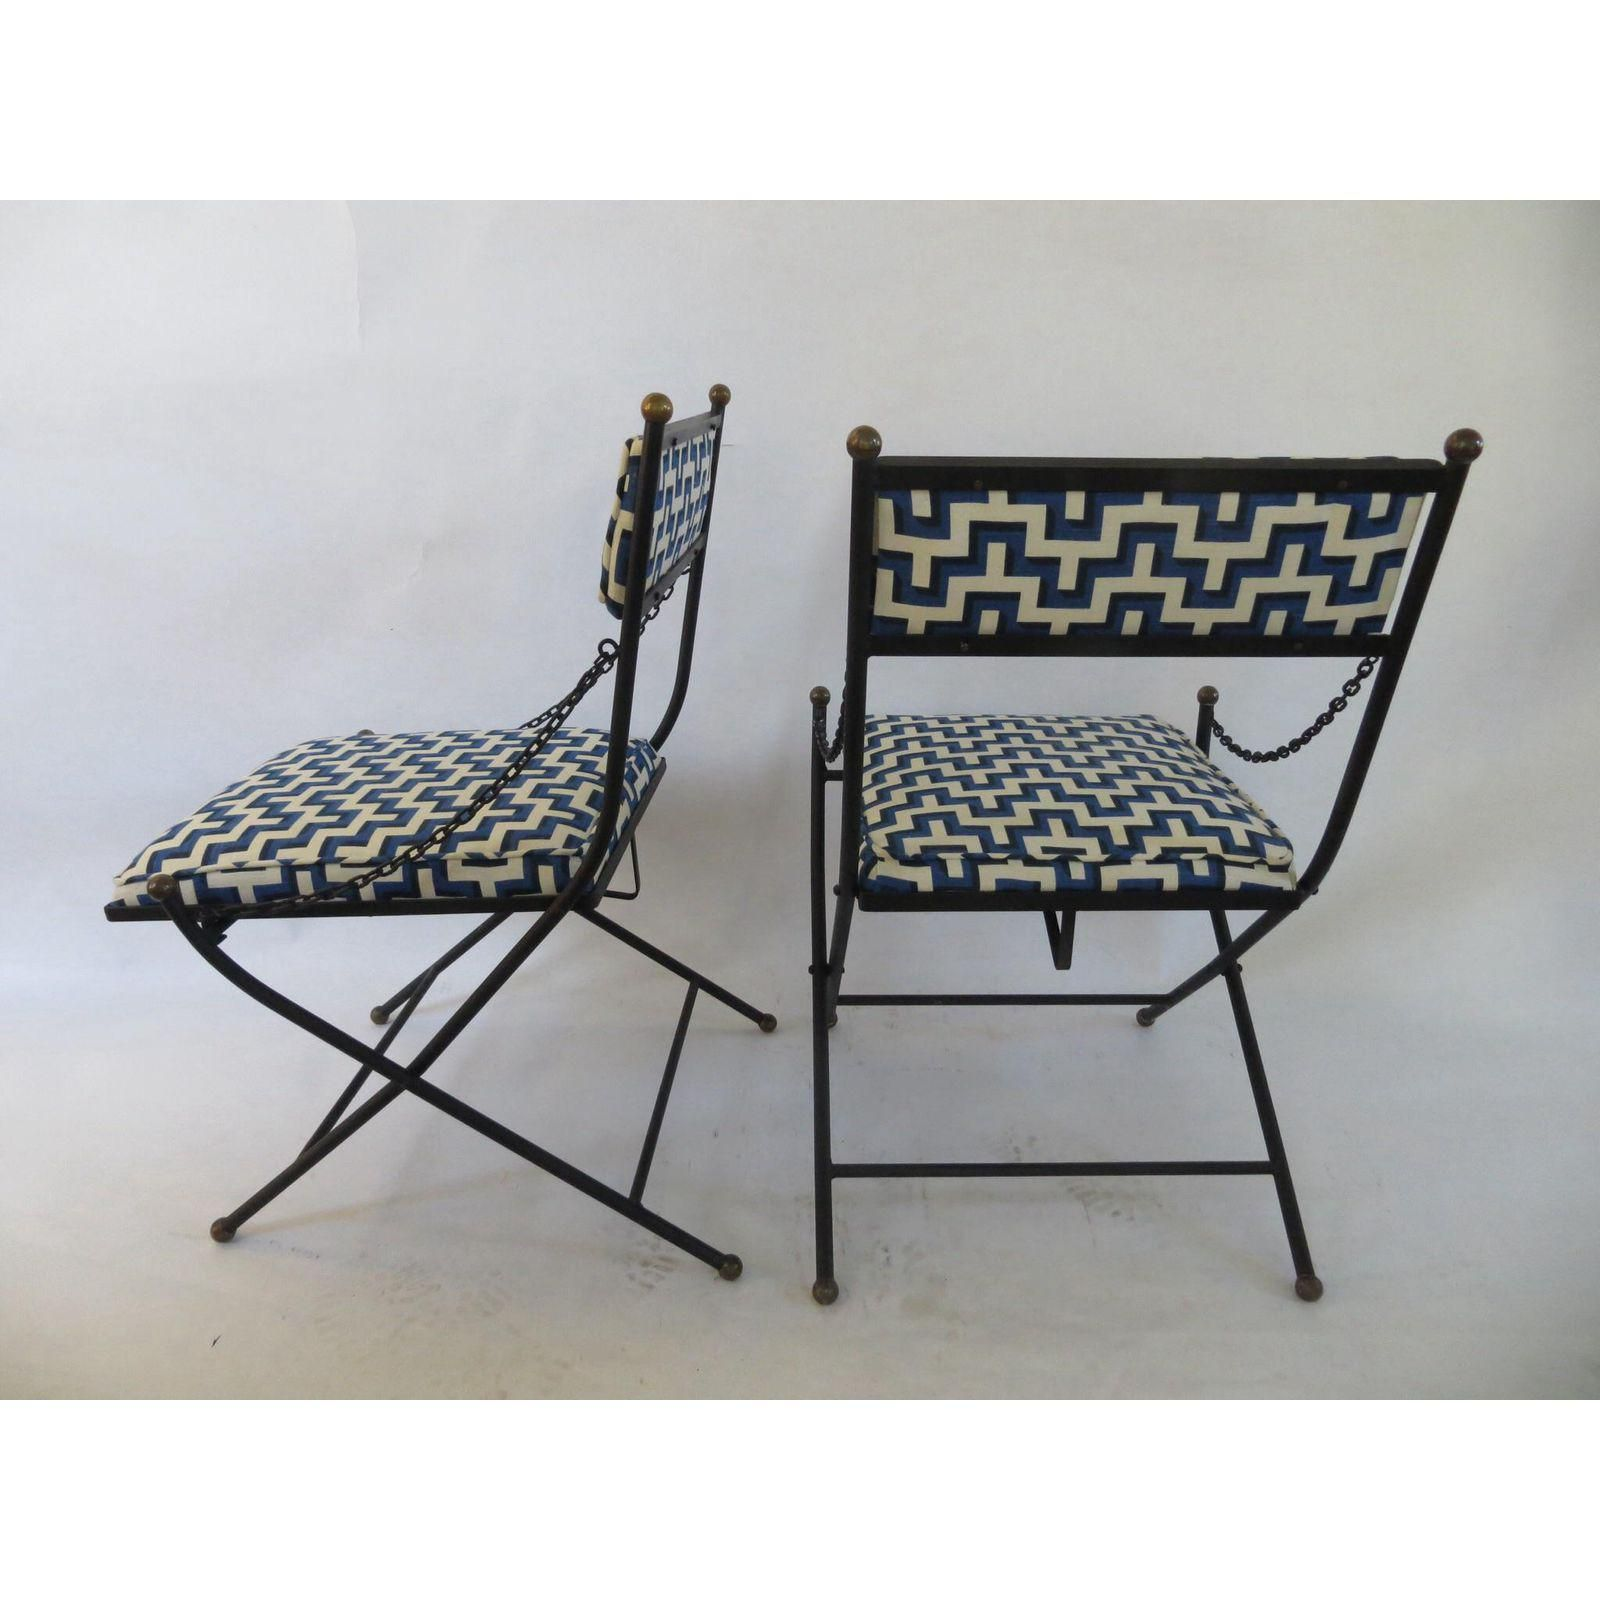 Vintage Folding Wrought Iron Chairs a Pair